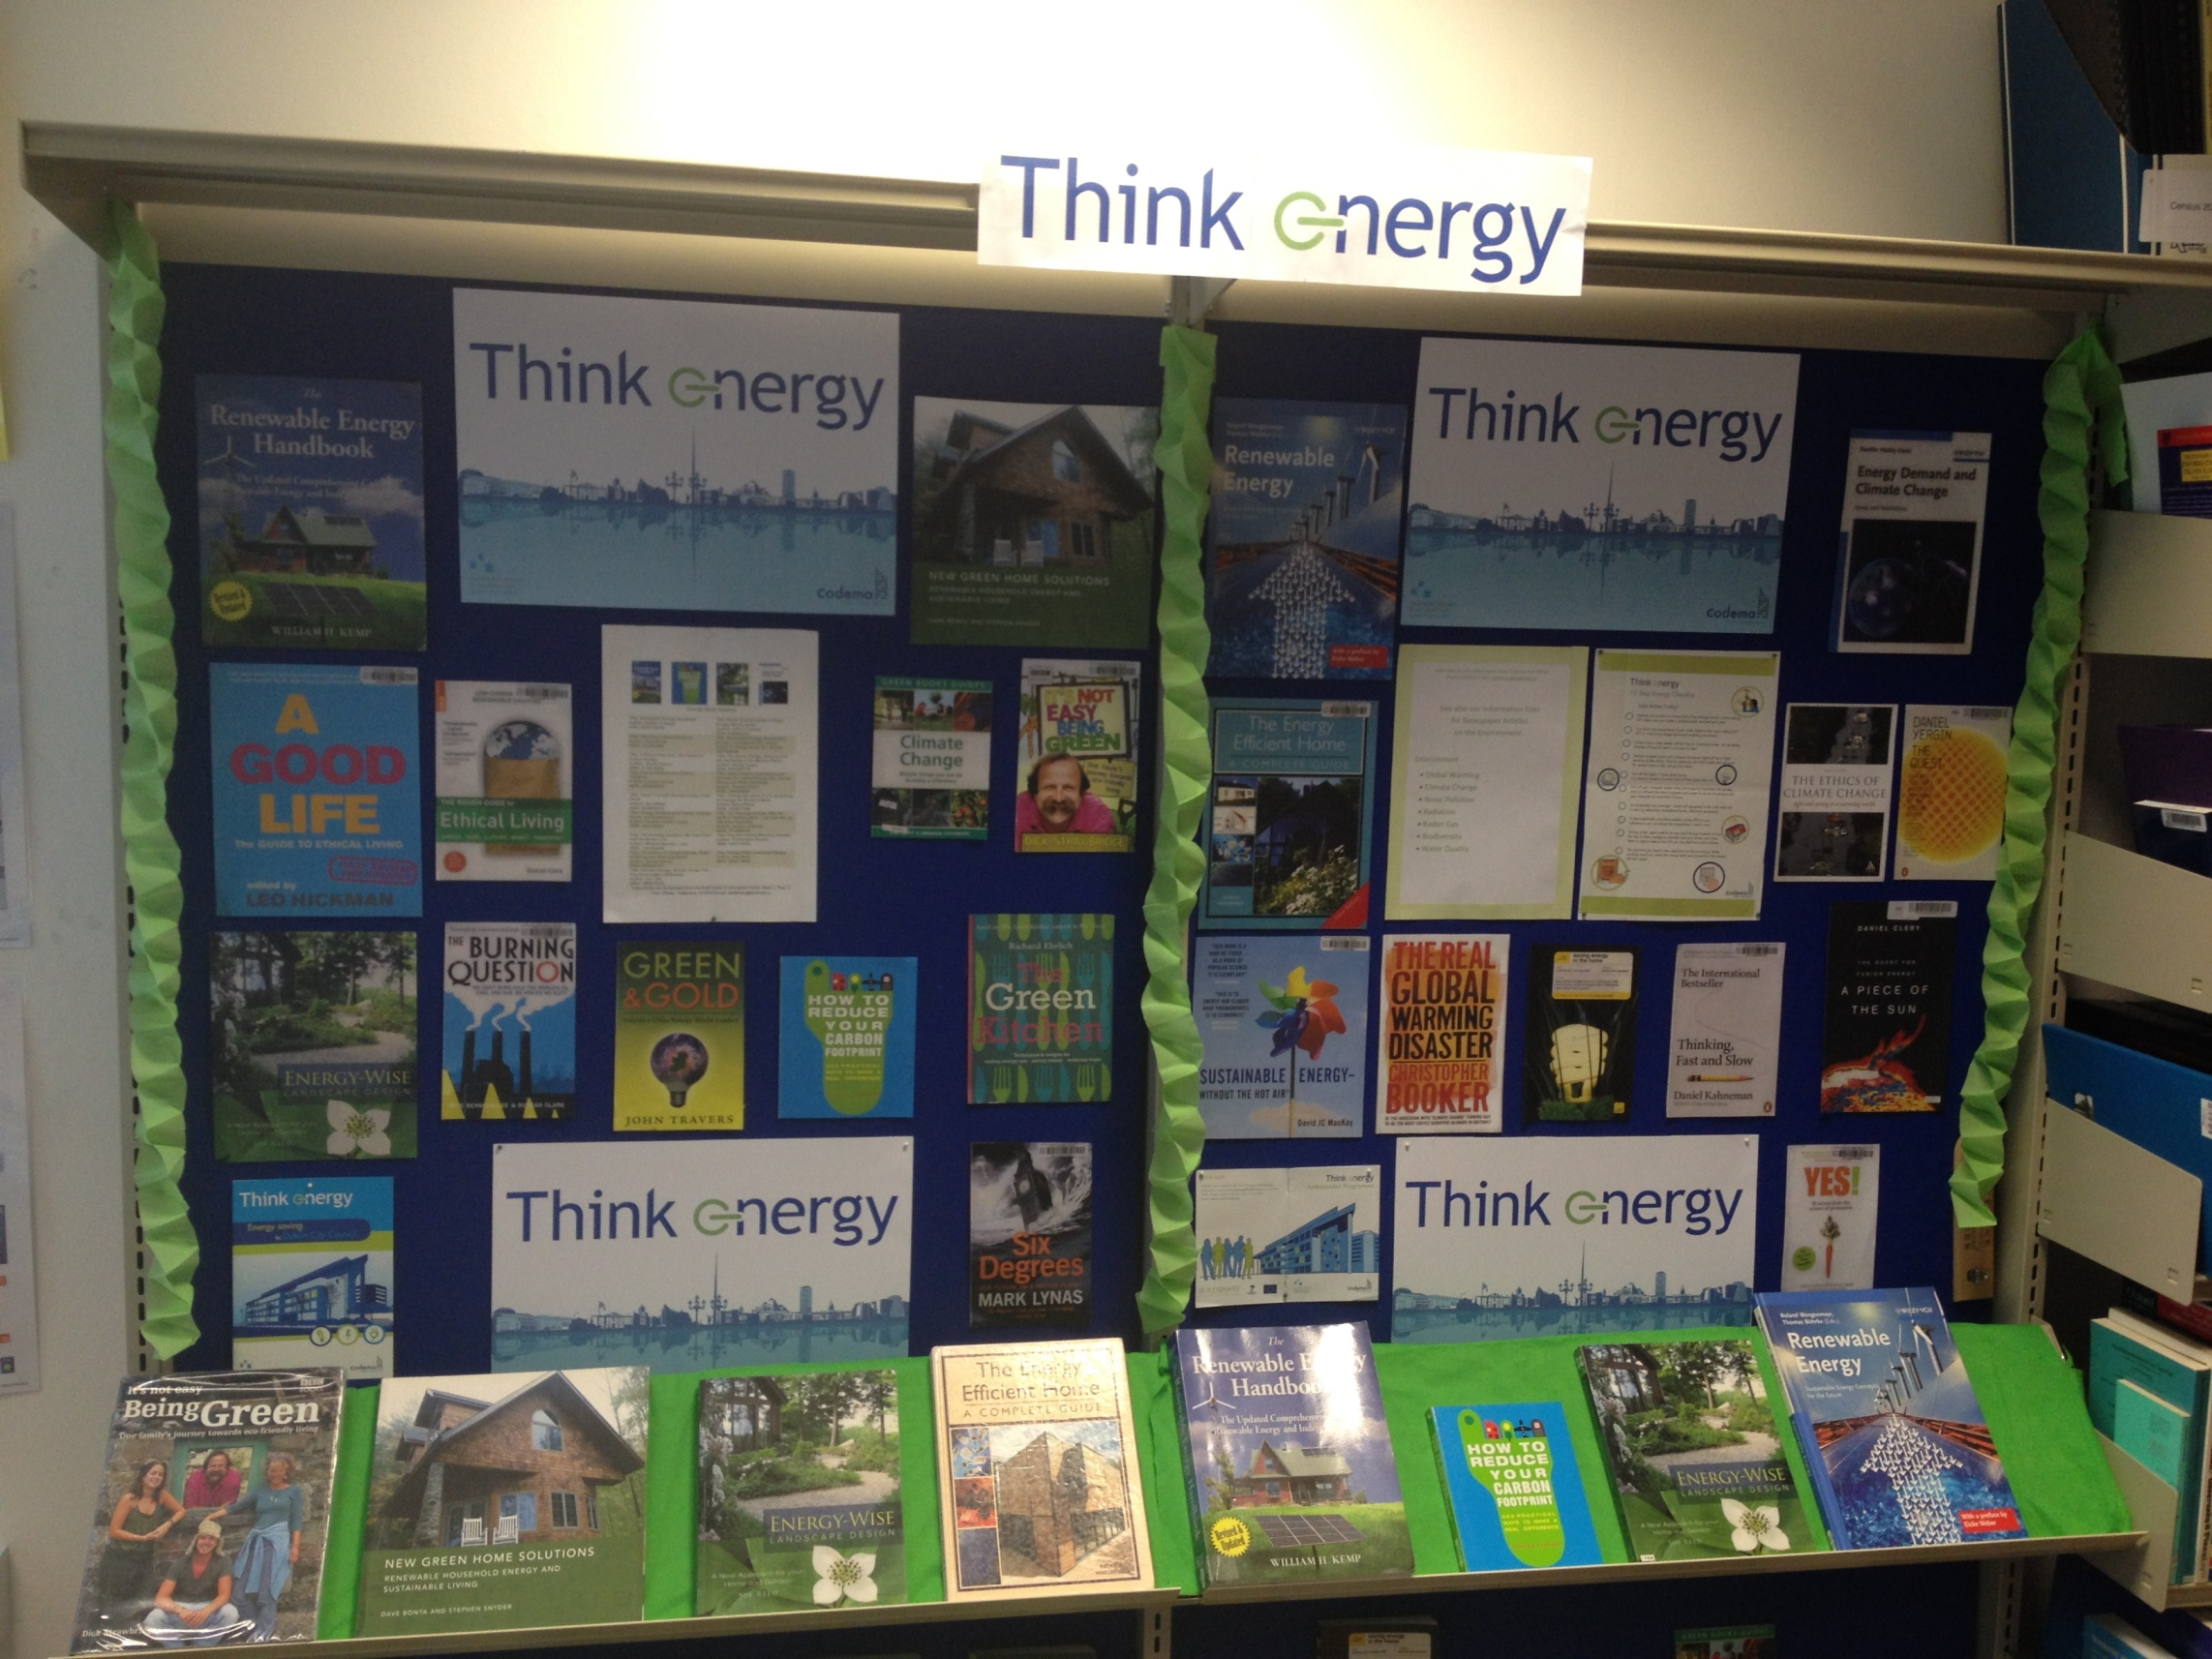 It Takes Lot Of Energy To Prepare For >> Think Energy Awareness Days Energy Efficiency Agency Dublin Codema